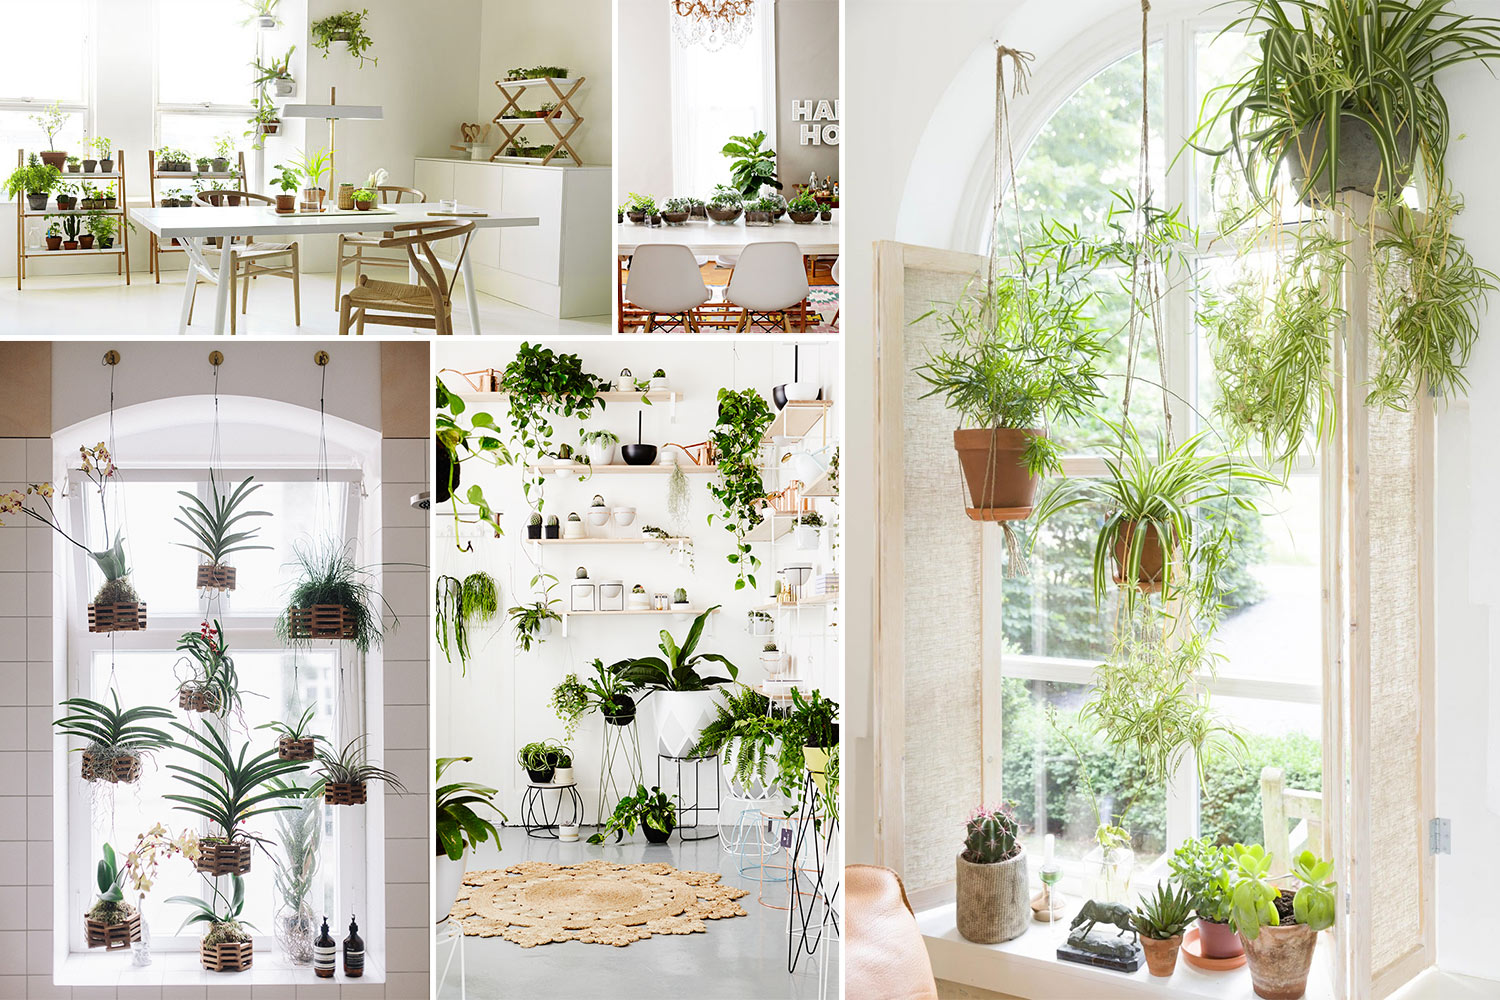 10 Amazing Indoor Garden Ideas To Brighten Your Home